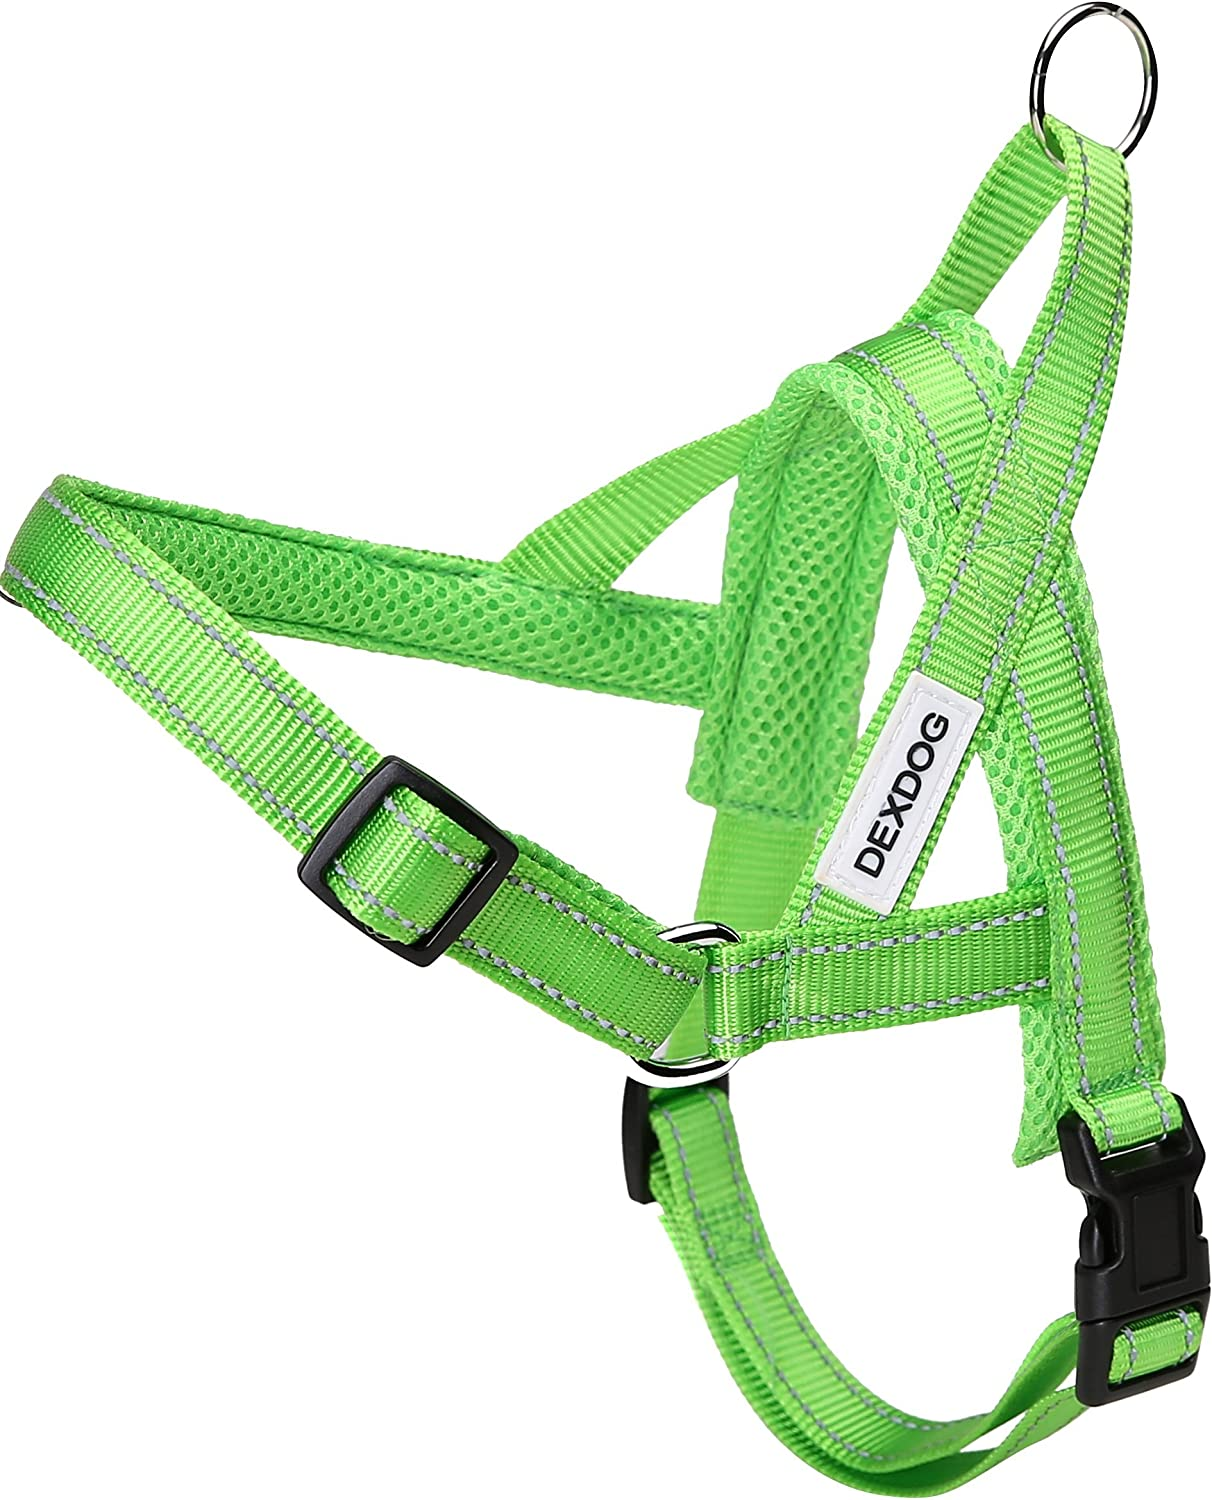 DEXDOG  1 Best Dog Harness  EZHarness On Off Walk in Seconds  [Green Large L]  Easy Quicker Step in Dog Harness Vest  Puppy No Pull Reflective Mesh Handle Adjustable Training